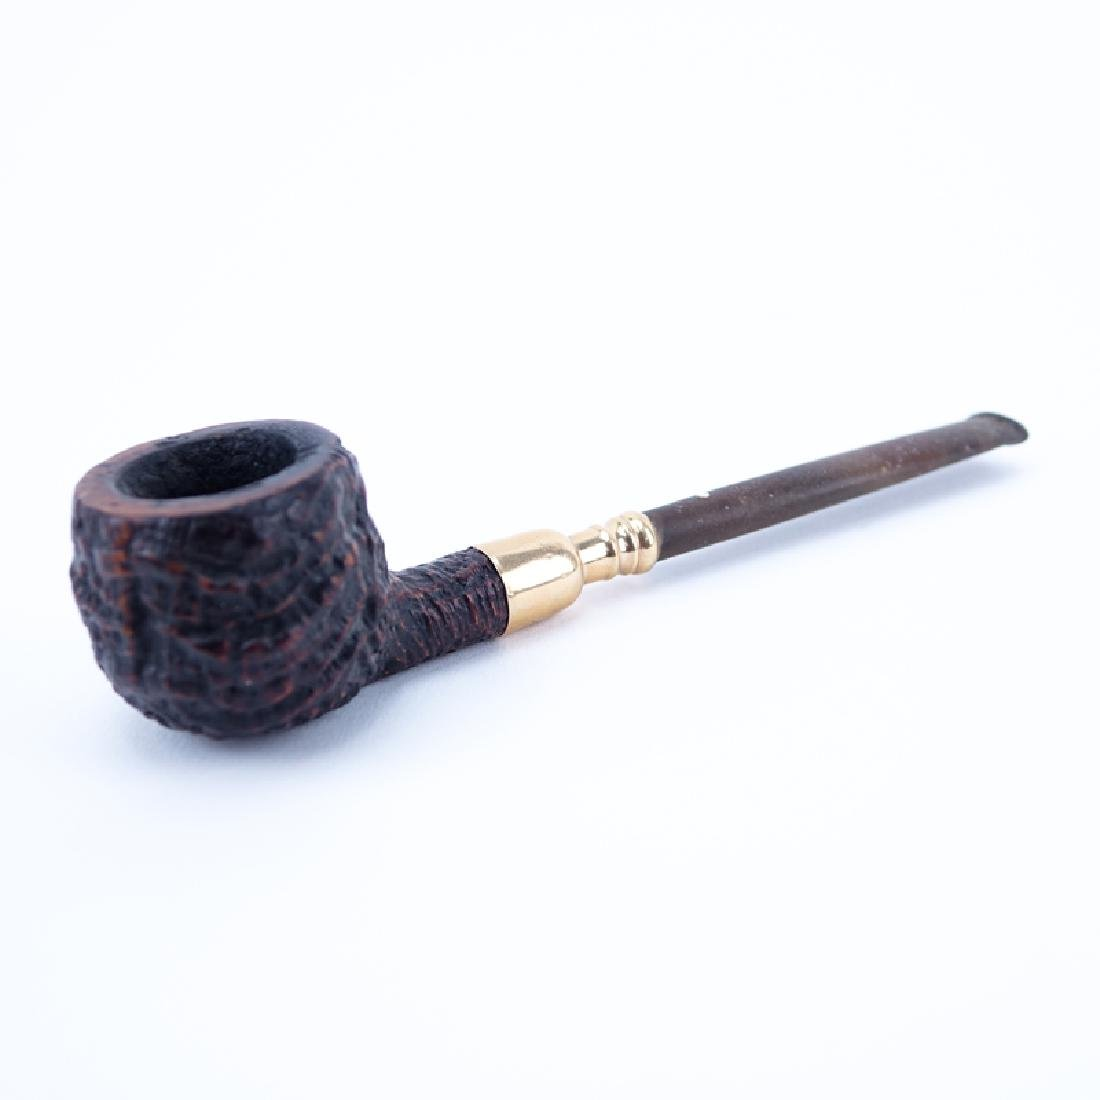 Dunhill Shell Briar Pipe with 14K Gold Spigot. Stamped